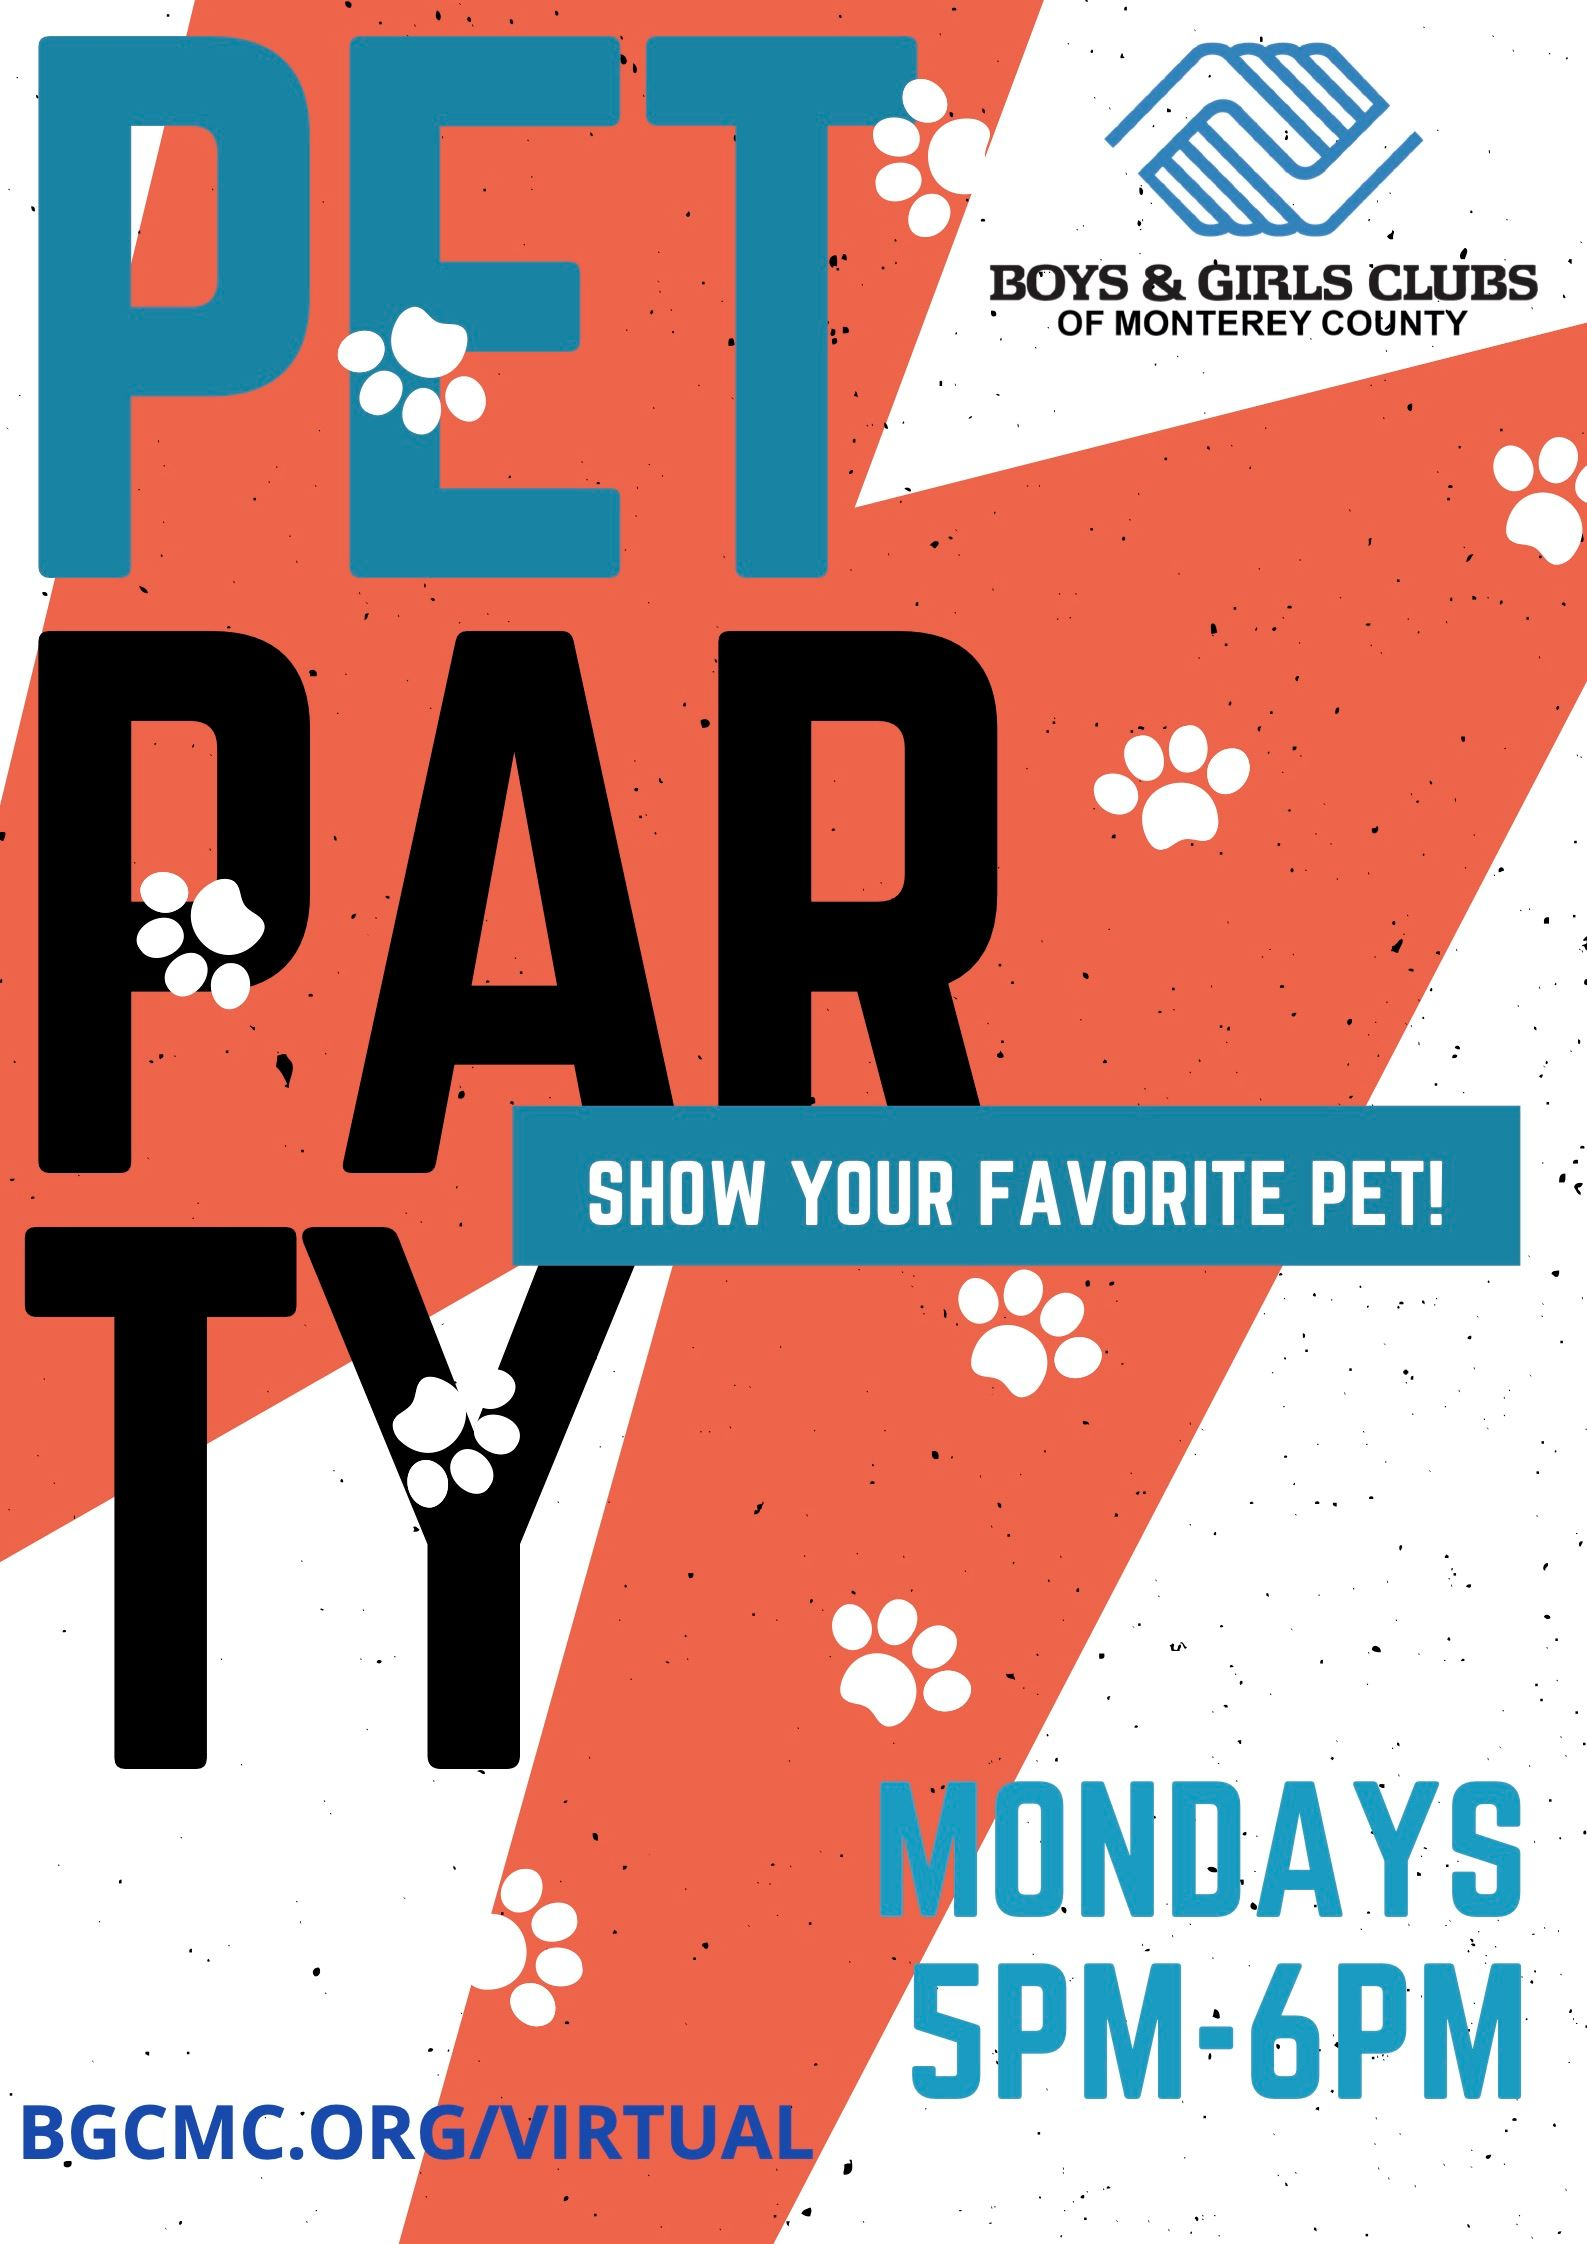 Boys and Girls Club Pet Party Mondays